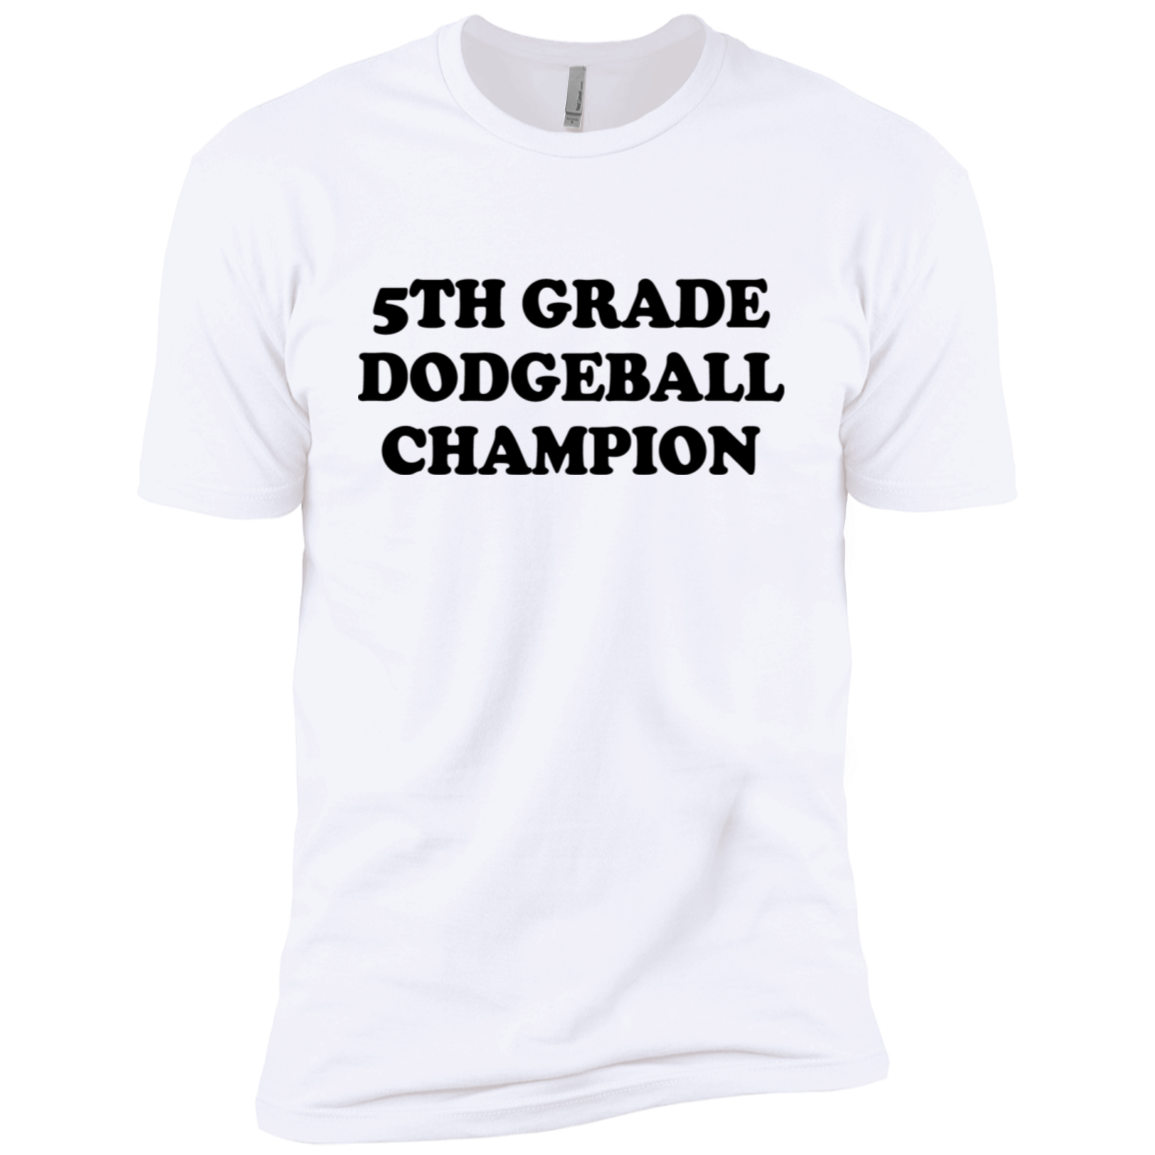 5th Grade Dodgeball Champion Men's Classic Tee